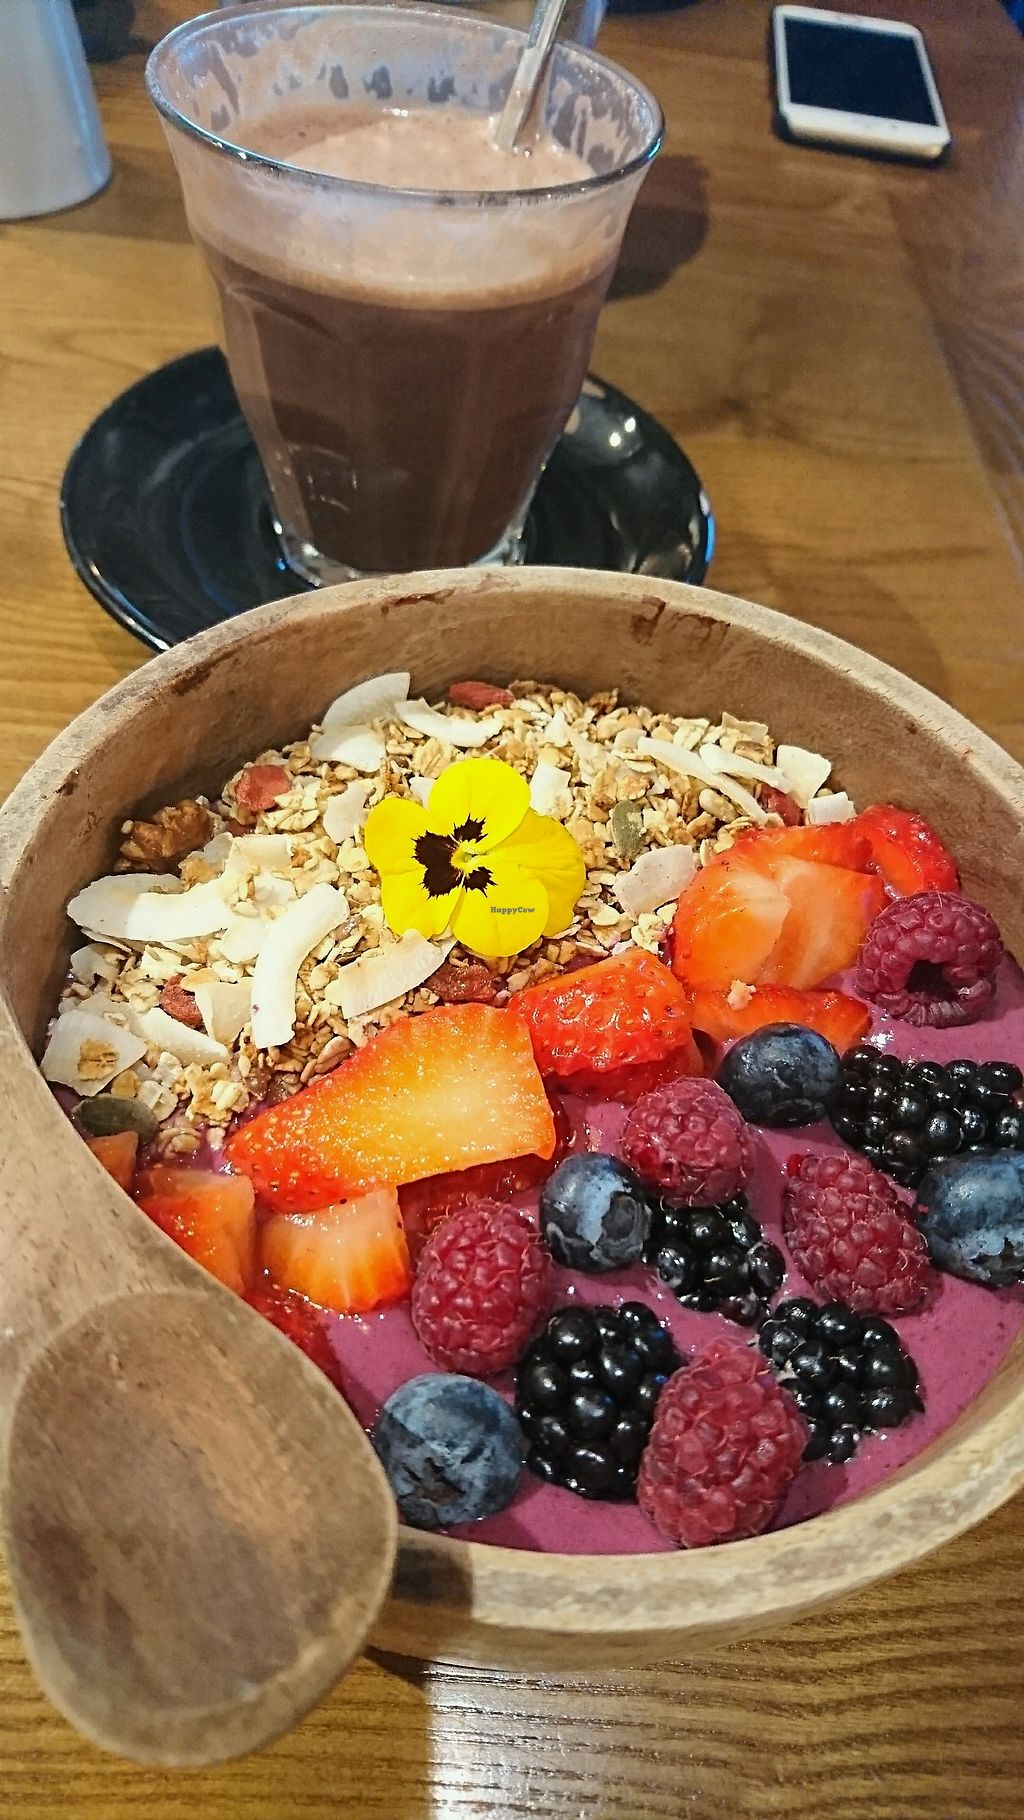 """Photo of Zenith  by <a href=""""/members/profile/HedvigMio"""">HedvigMio</a> <br/>vegan smoothie bowl and peppermint hot chocolate <br/> December 2, 2017  - <a href='/contact/abuse/image/98408/331462'>Report</a>"""